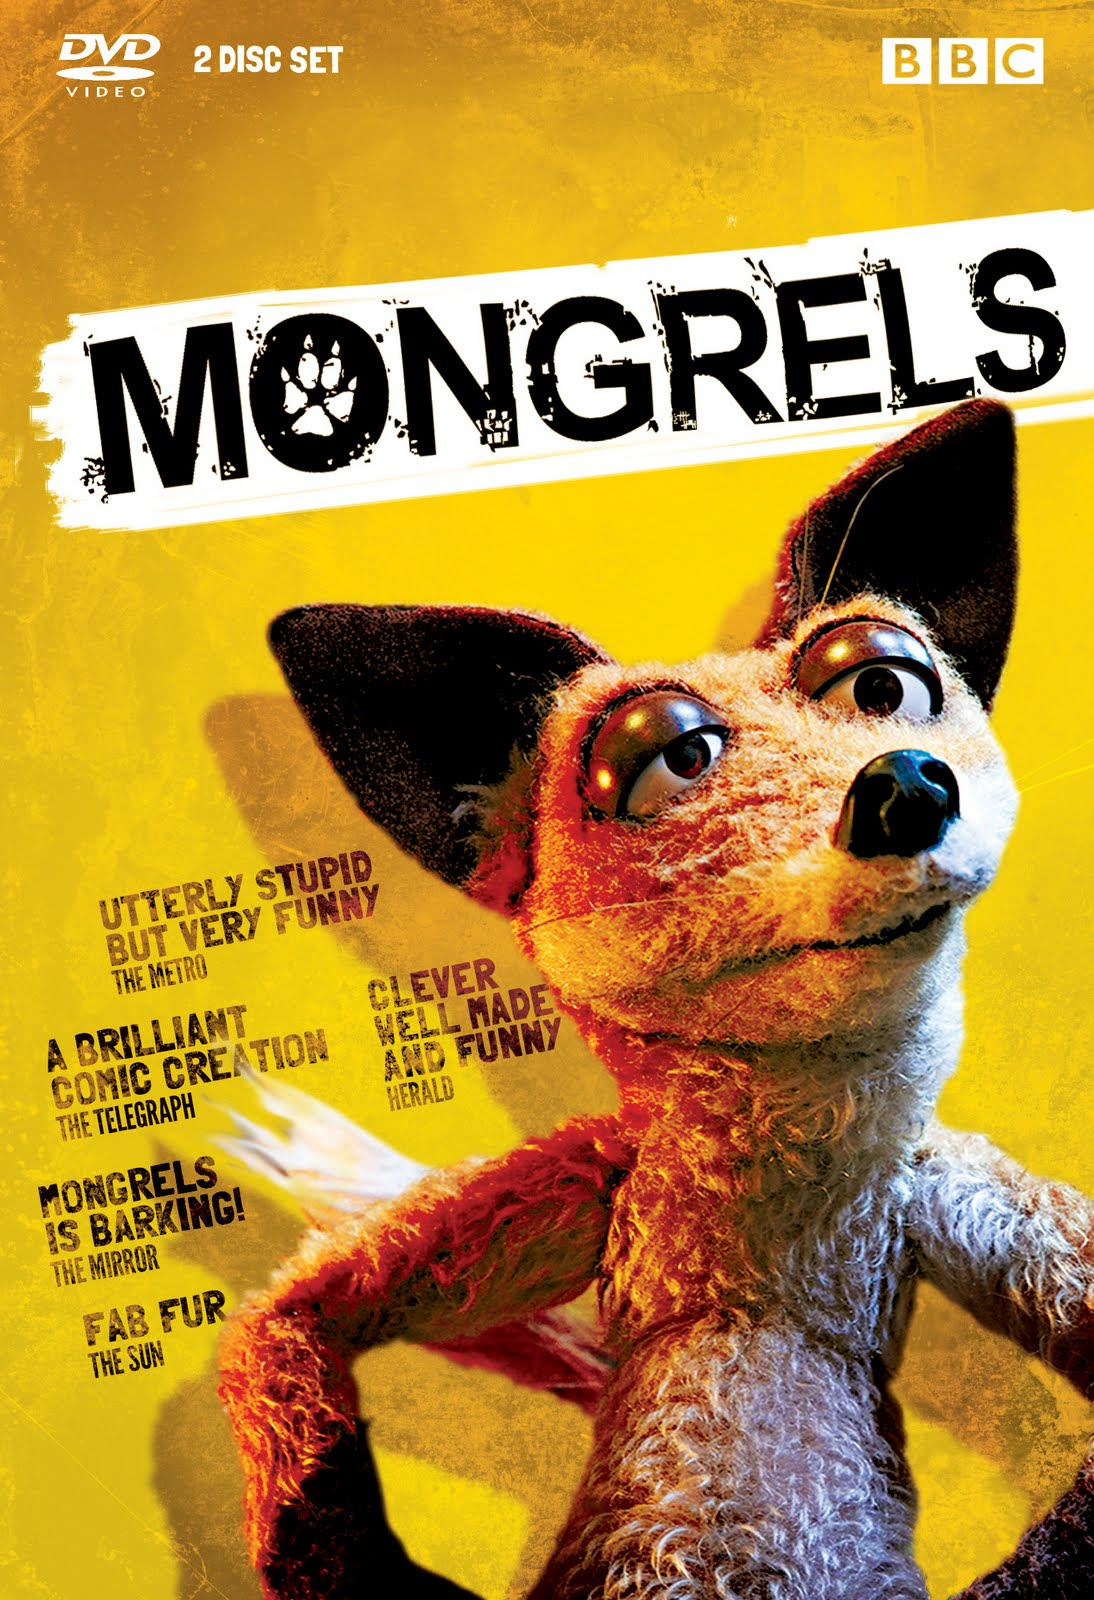 The Mongrels - Do You Know Your Mother